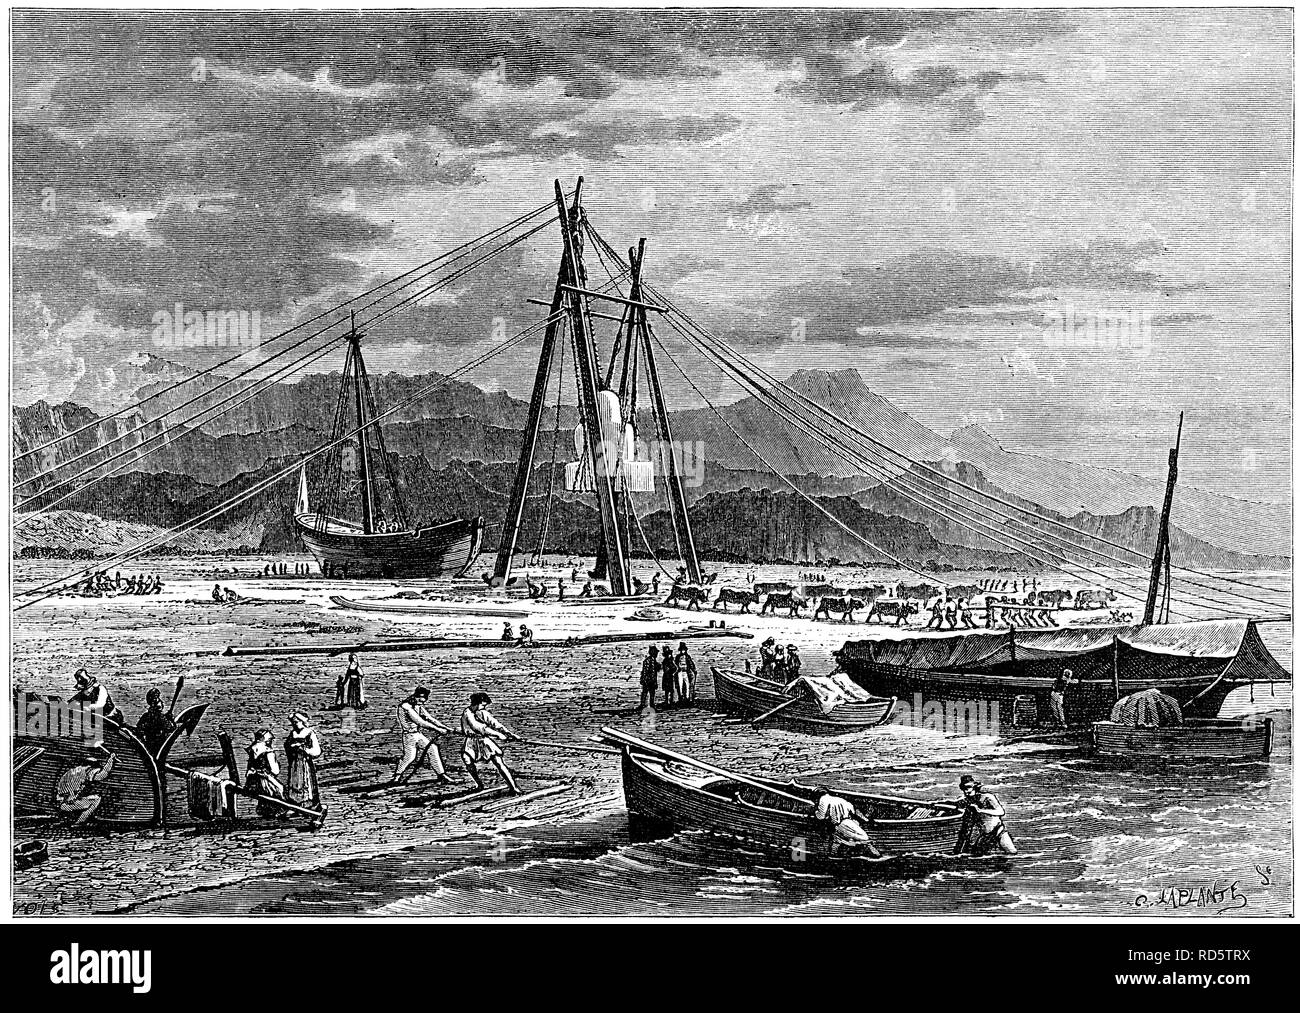 Transporting cut marble clocks, Avenza, Italy, from The Mediterranean Illustrated, Nelson, London, 1880 Stock Photo